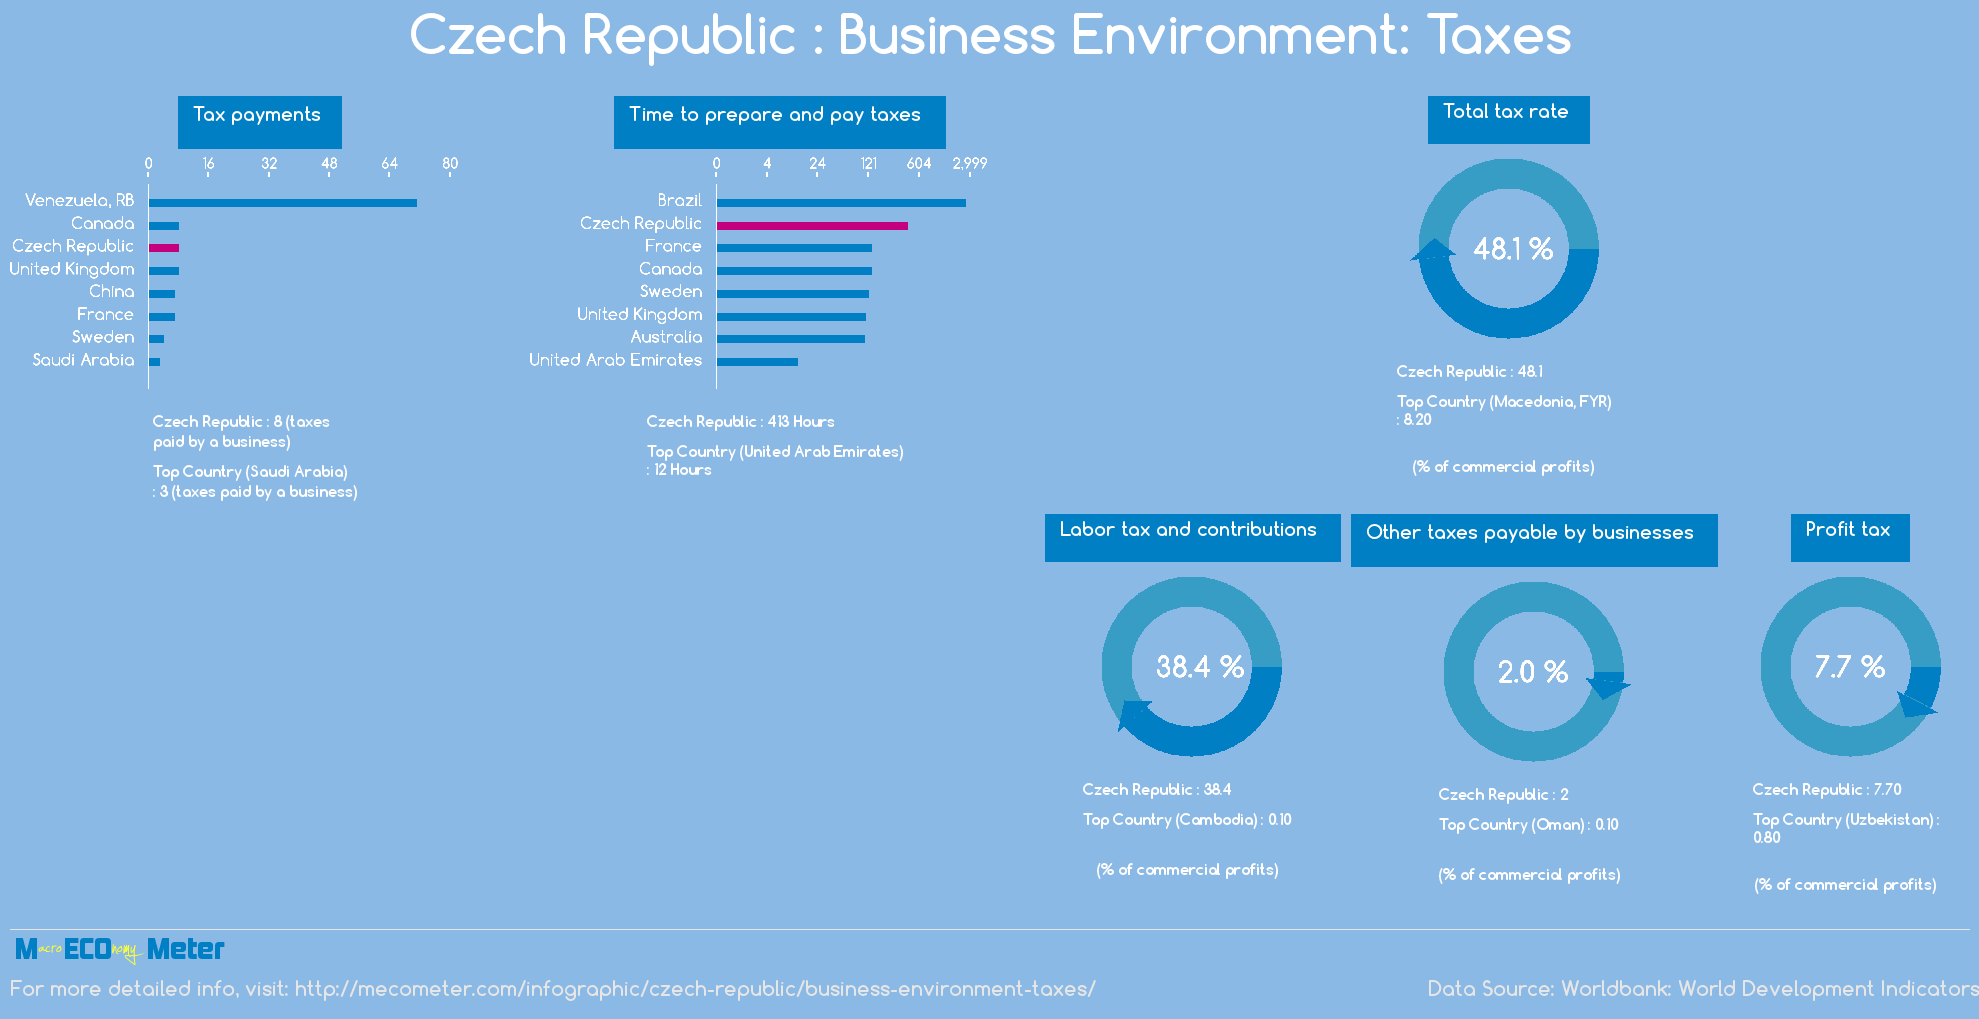 Czech Republic : Business Environment: Taxes